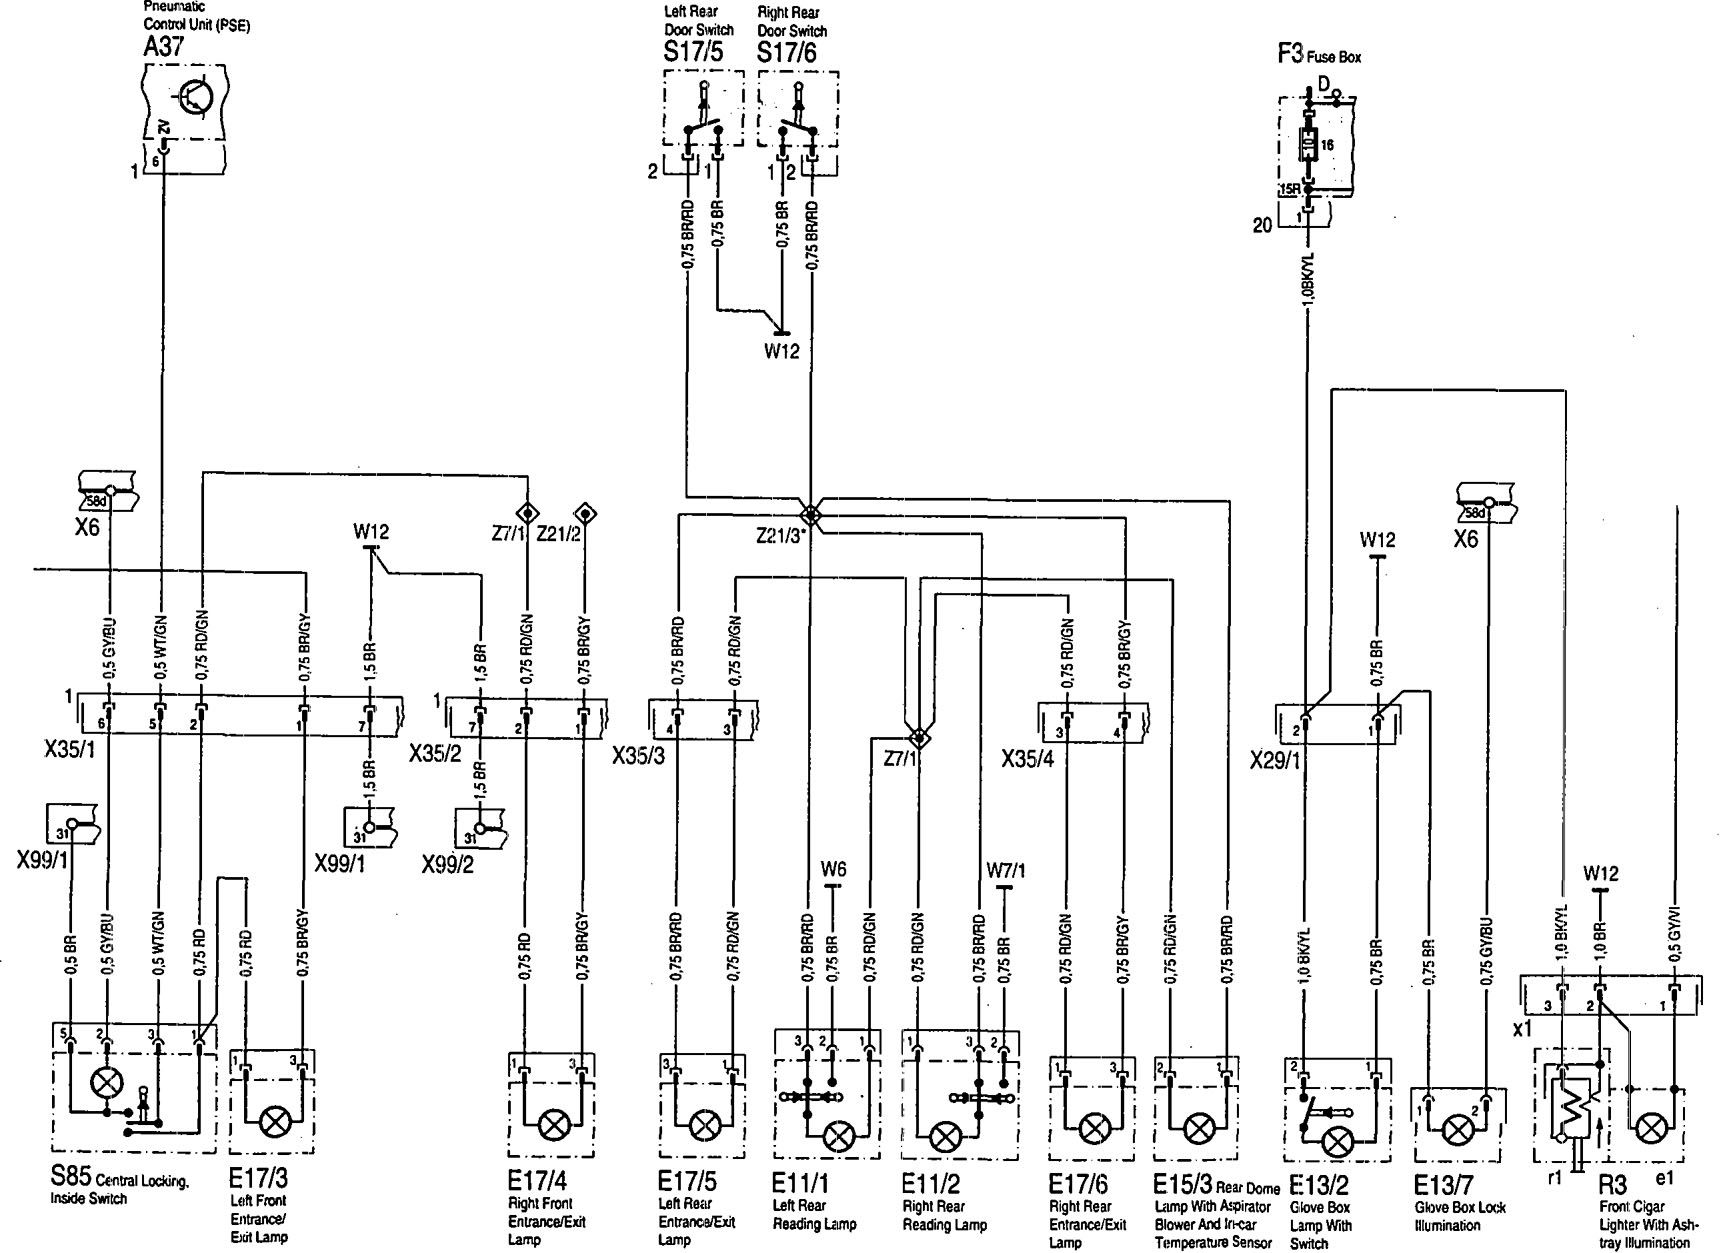 mercedes-benz 300sd (1992 - 1993) - wiring diagrams - interior lighting -  carknowledge.info  carknowledge.info